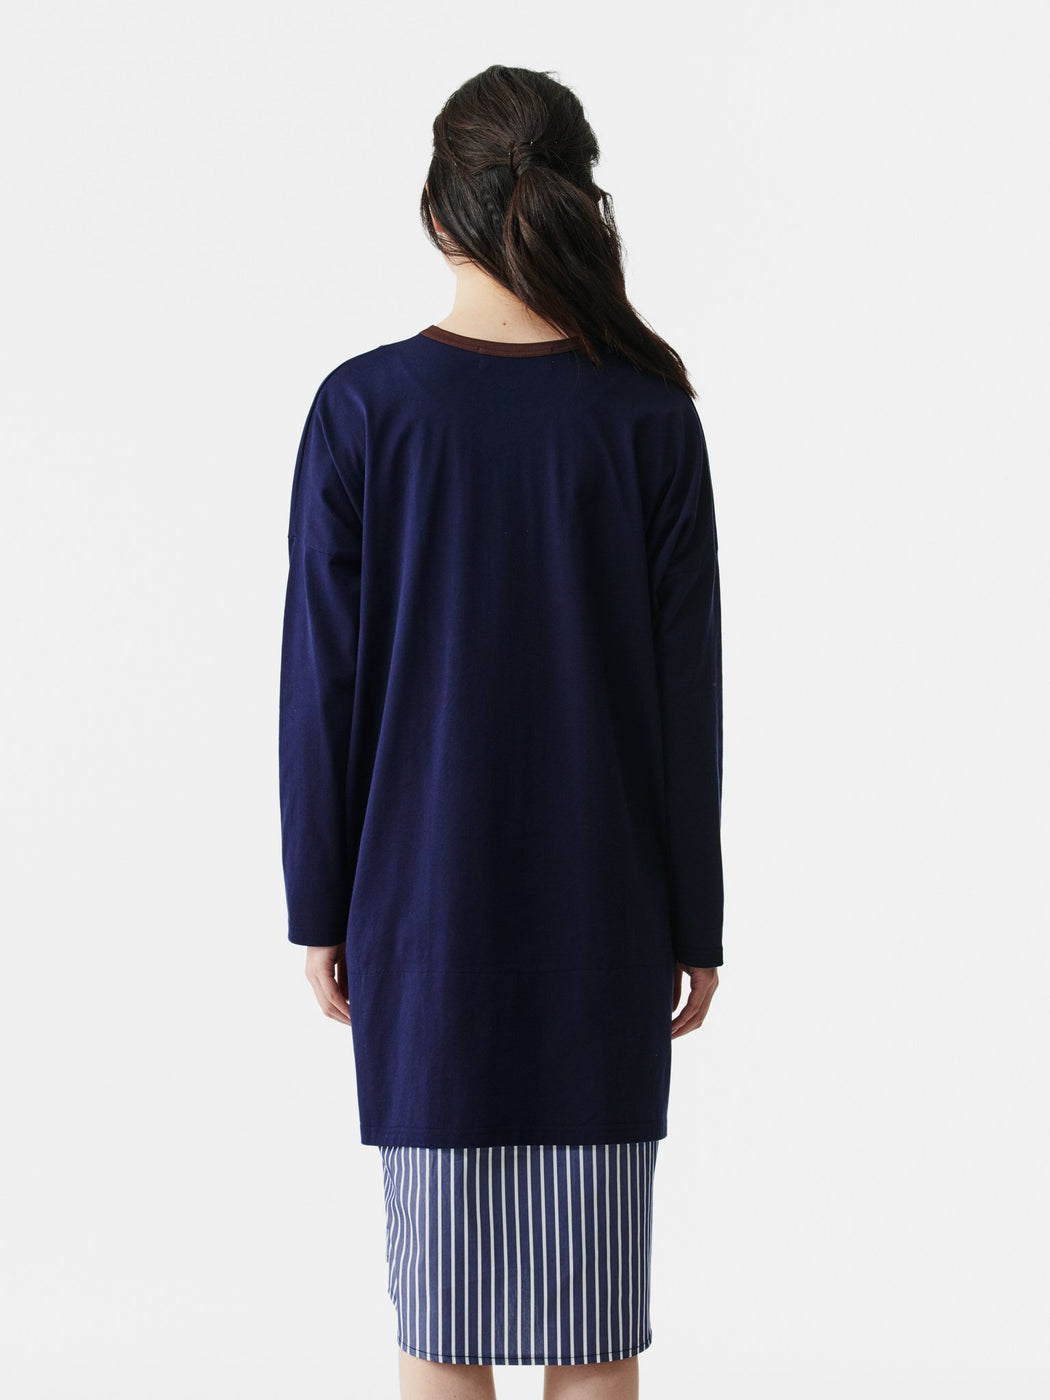 ALOYE Shirt Fabrics Women's Long Sleeve T-shirt Dress Navy-Navy Stripe